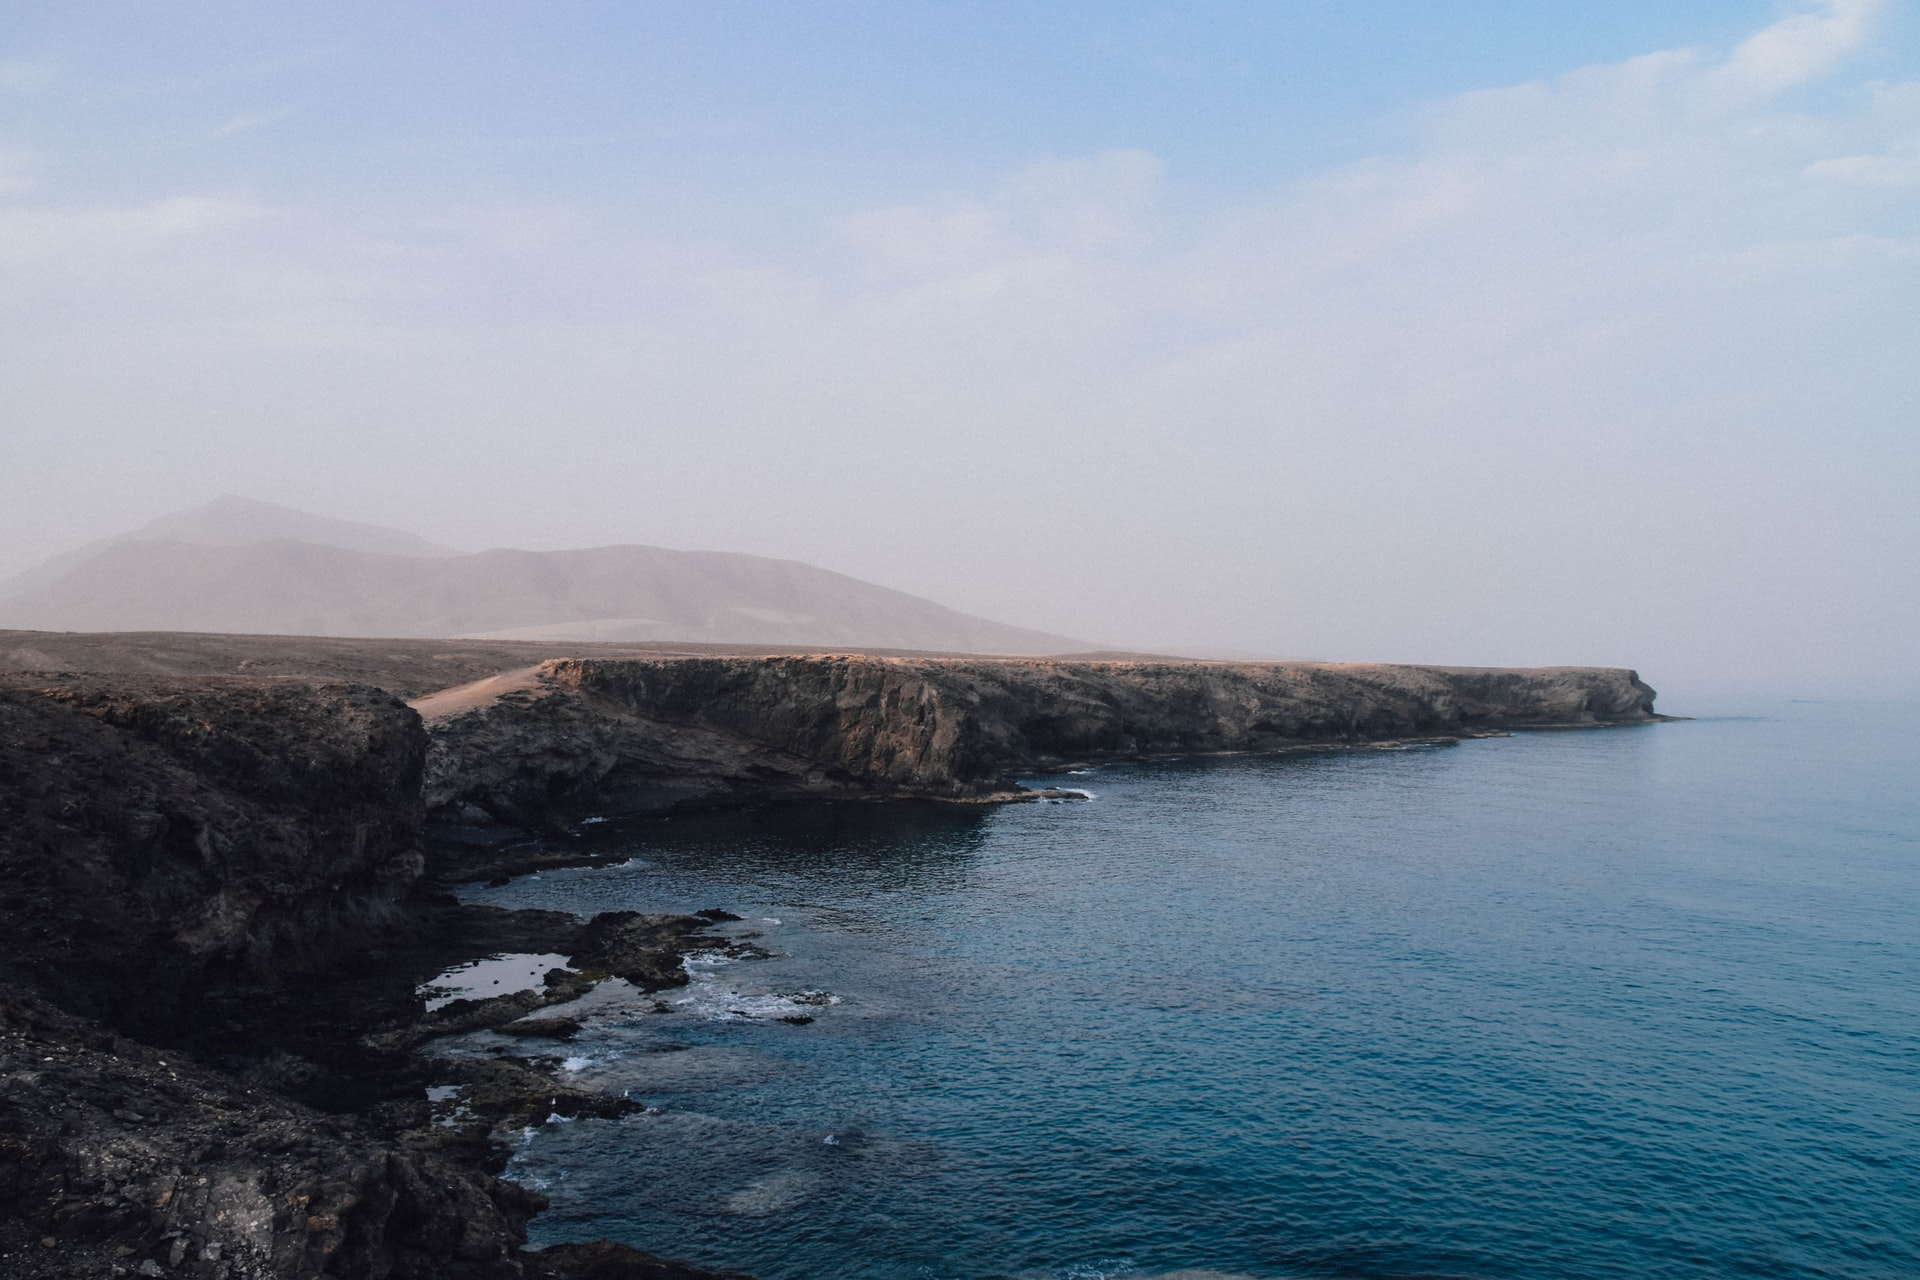 My Trip to Lanzarote in the Canary Islands, Spain – Travel in Covid-19 Times